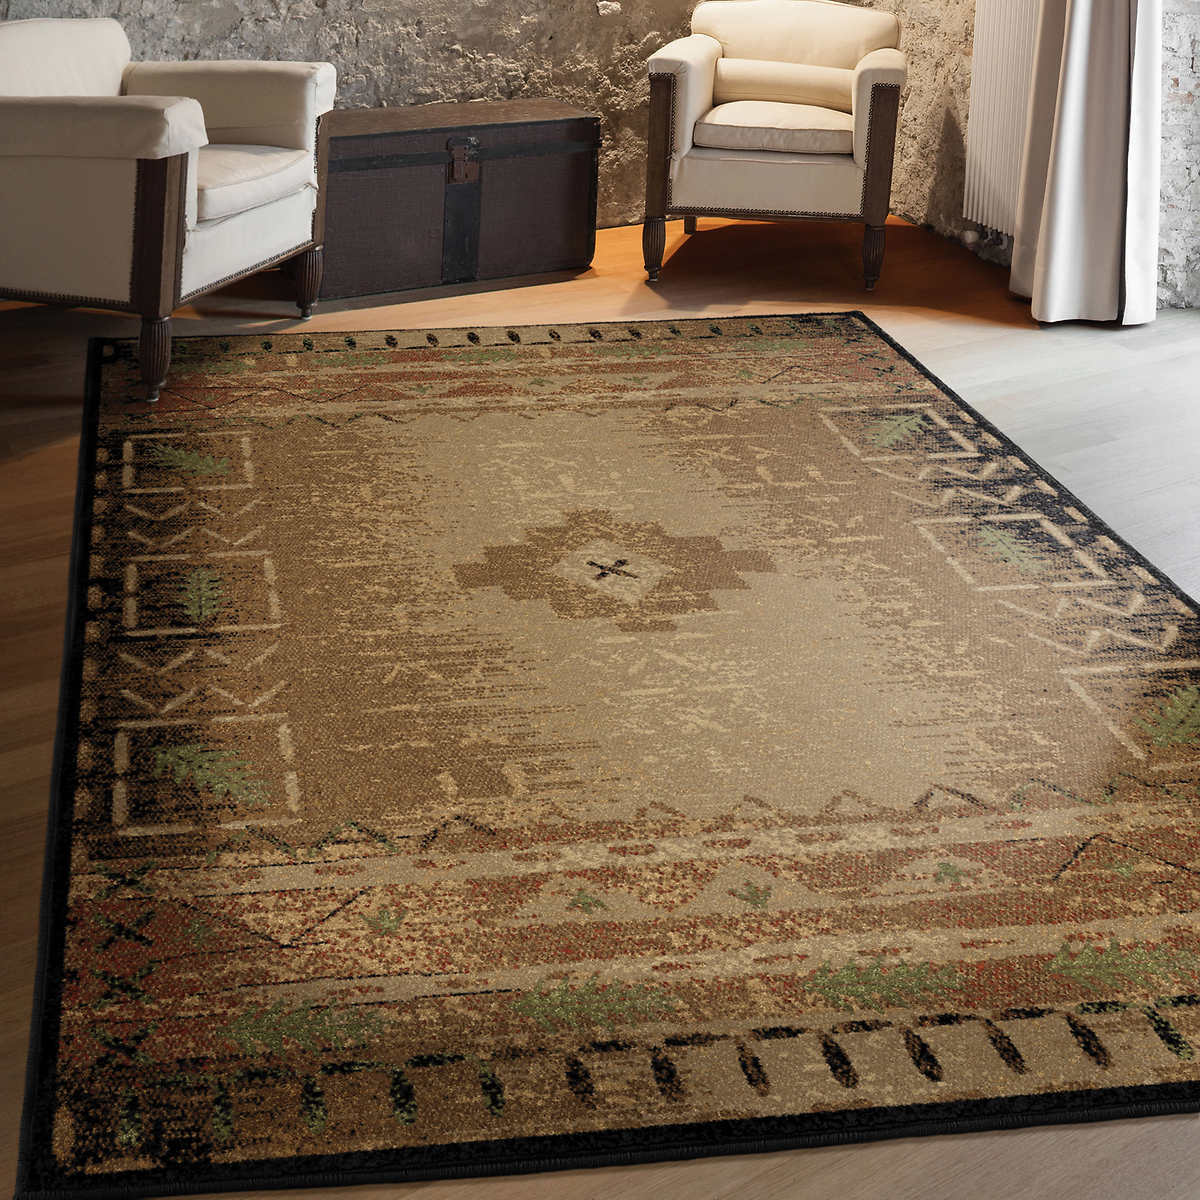 Rugs Area Carpet 8x10 Rug Large Floor Southwestern New